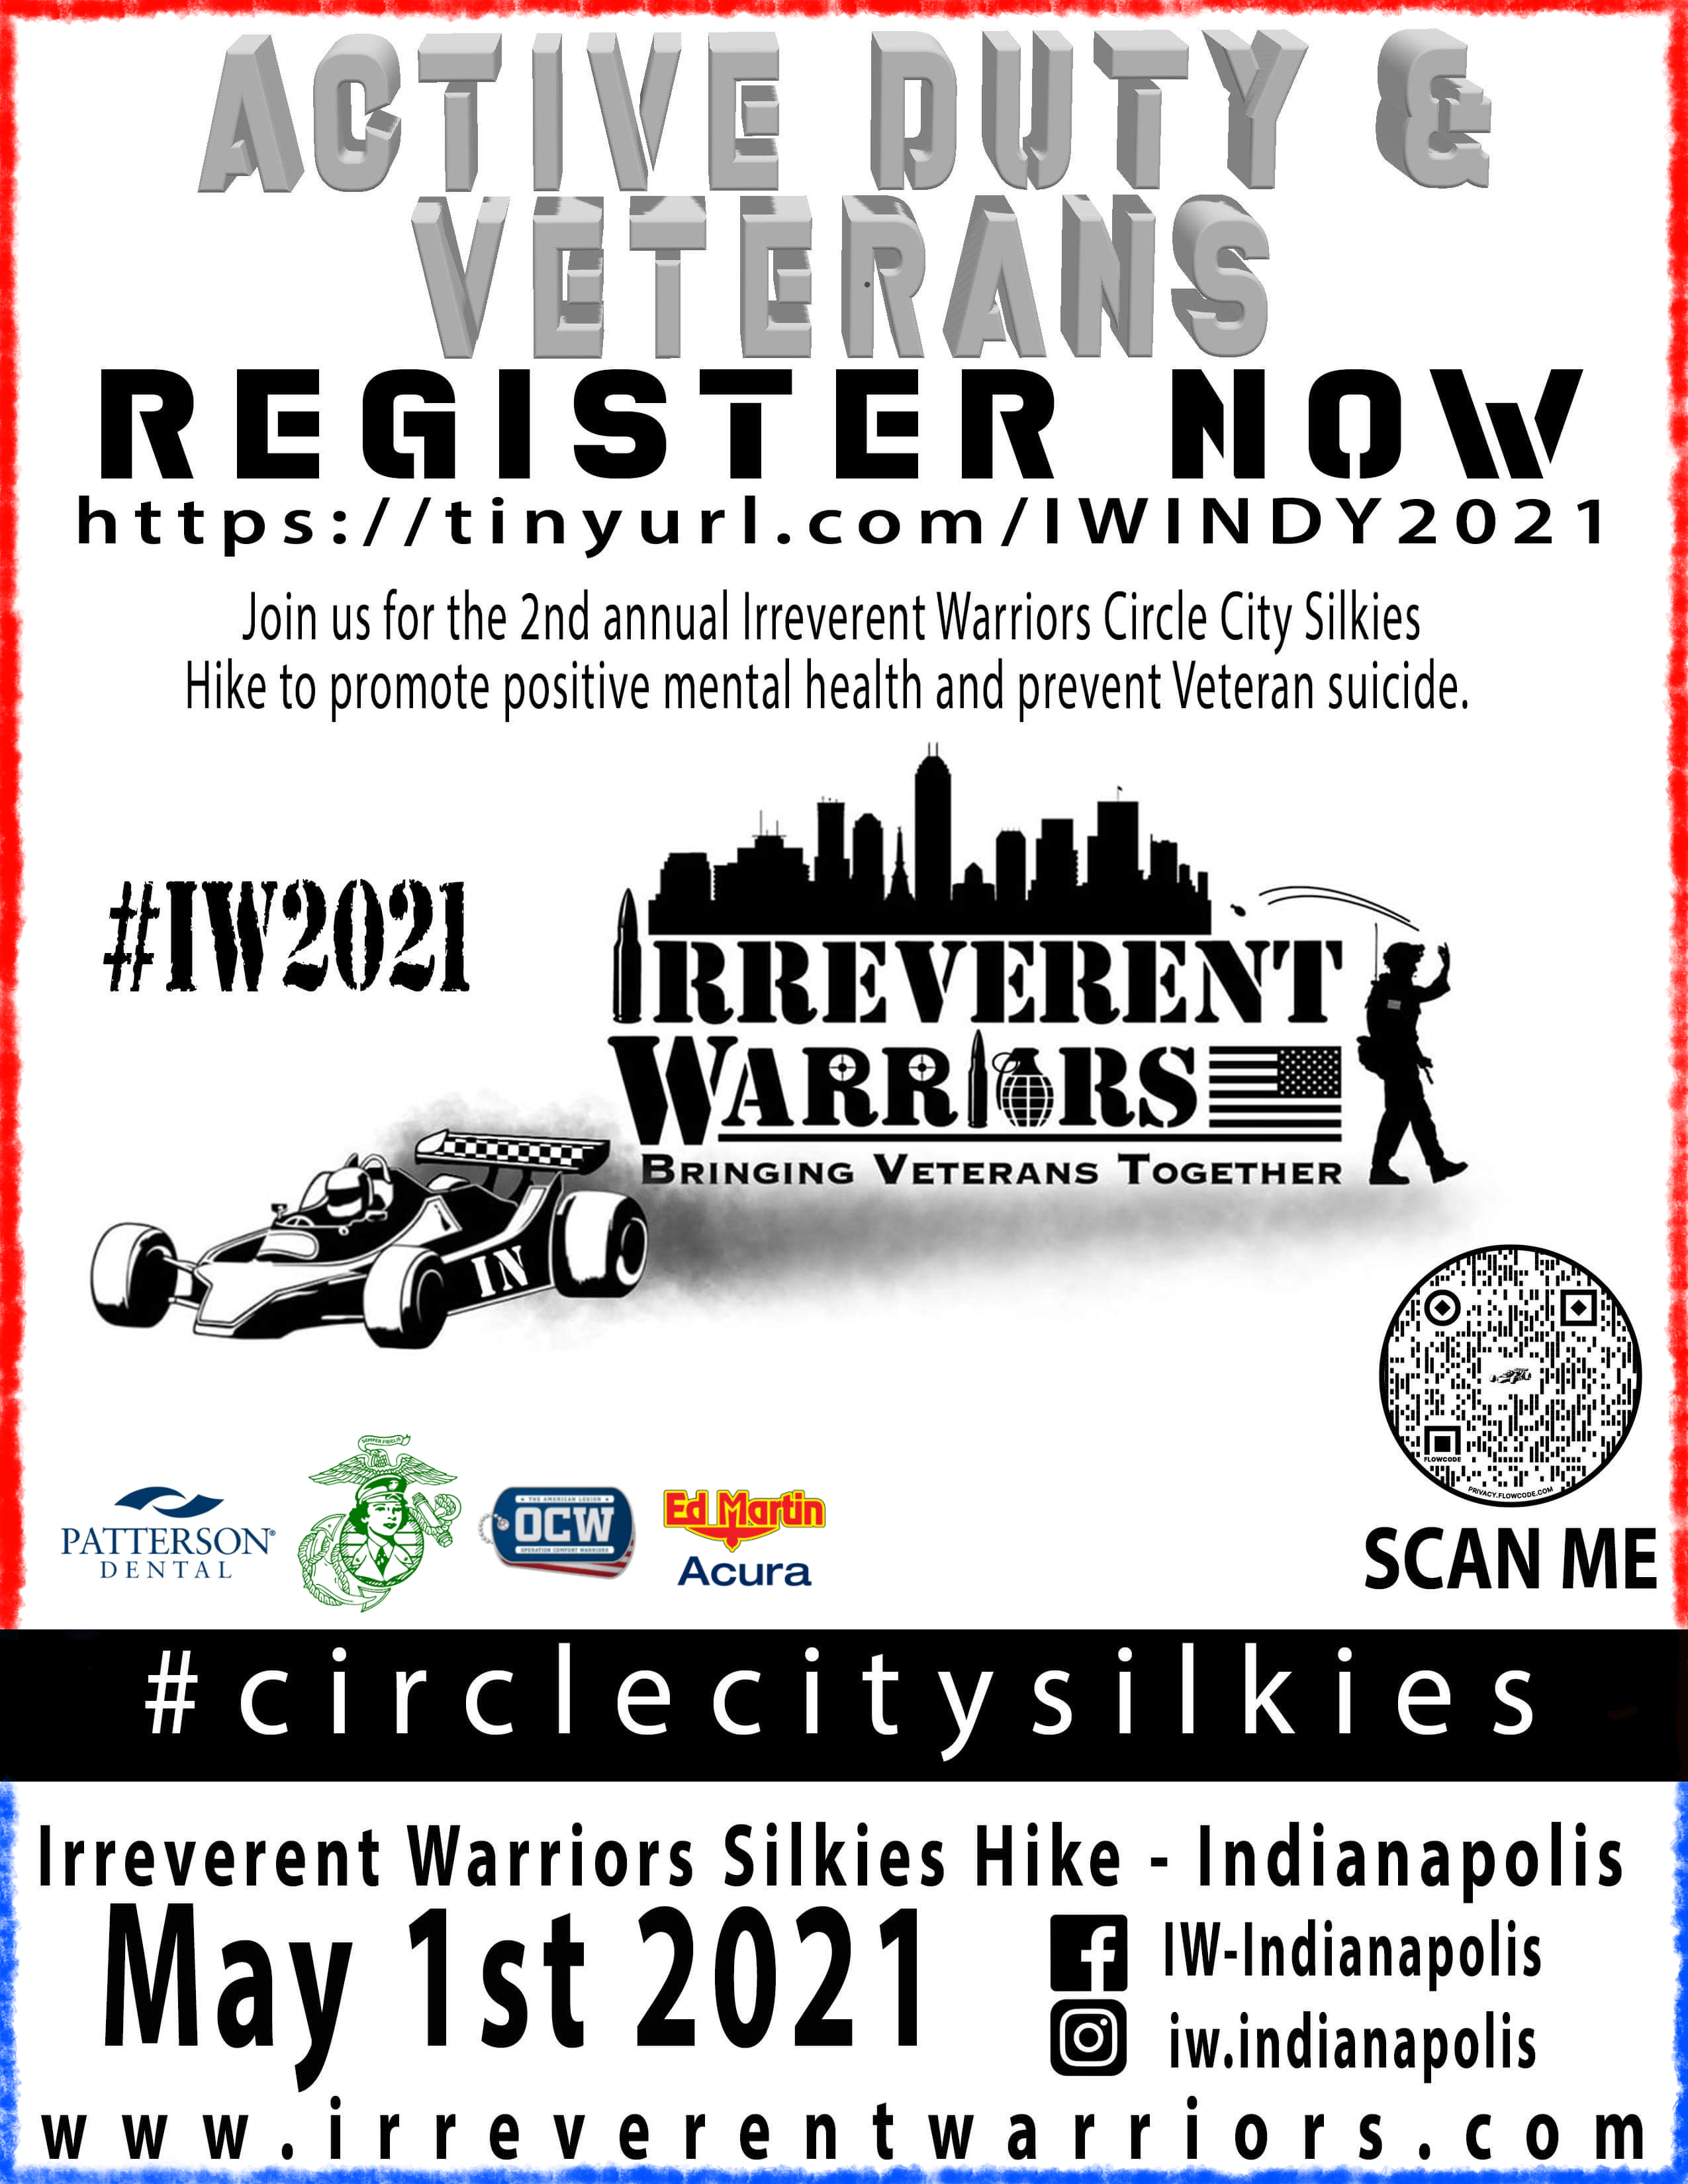 Irreverent Warriors Silkies Hike - Indianapolis